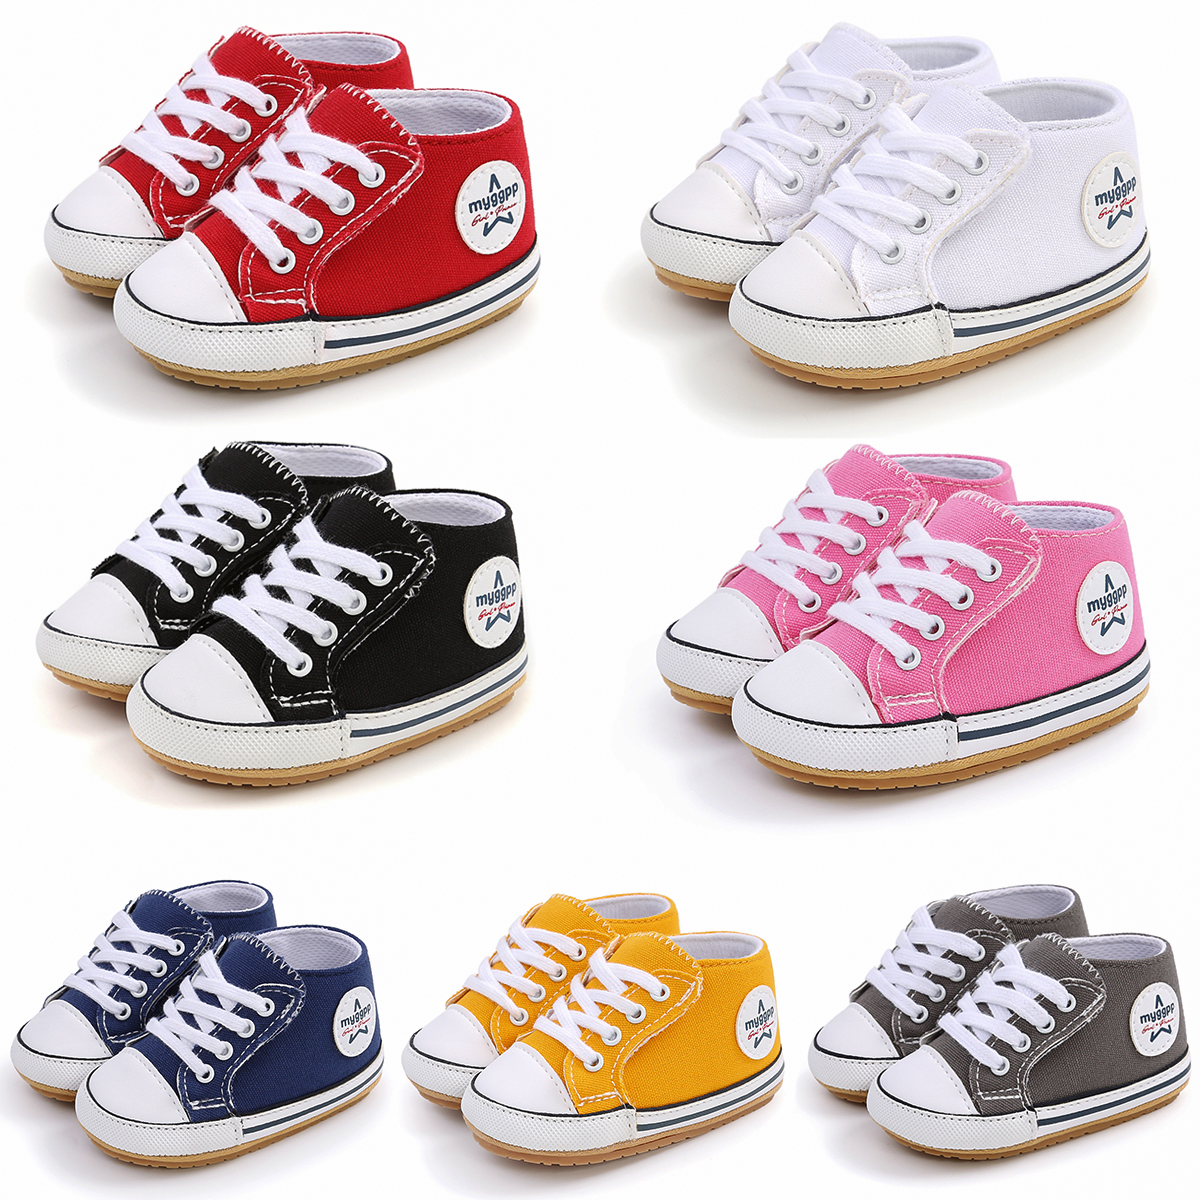 2021 New Classic Baby Canvas Shoes Toddlers Rubber Sole Moccasins Anti-slip Infant First Walkers Boys Girls Newborn Crib Shoes 1